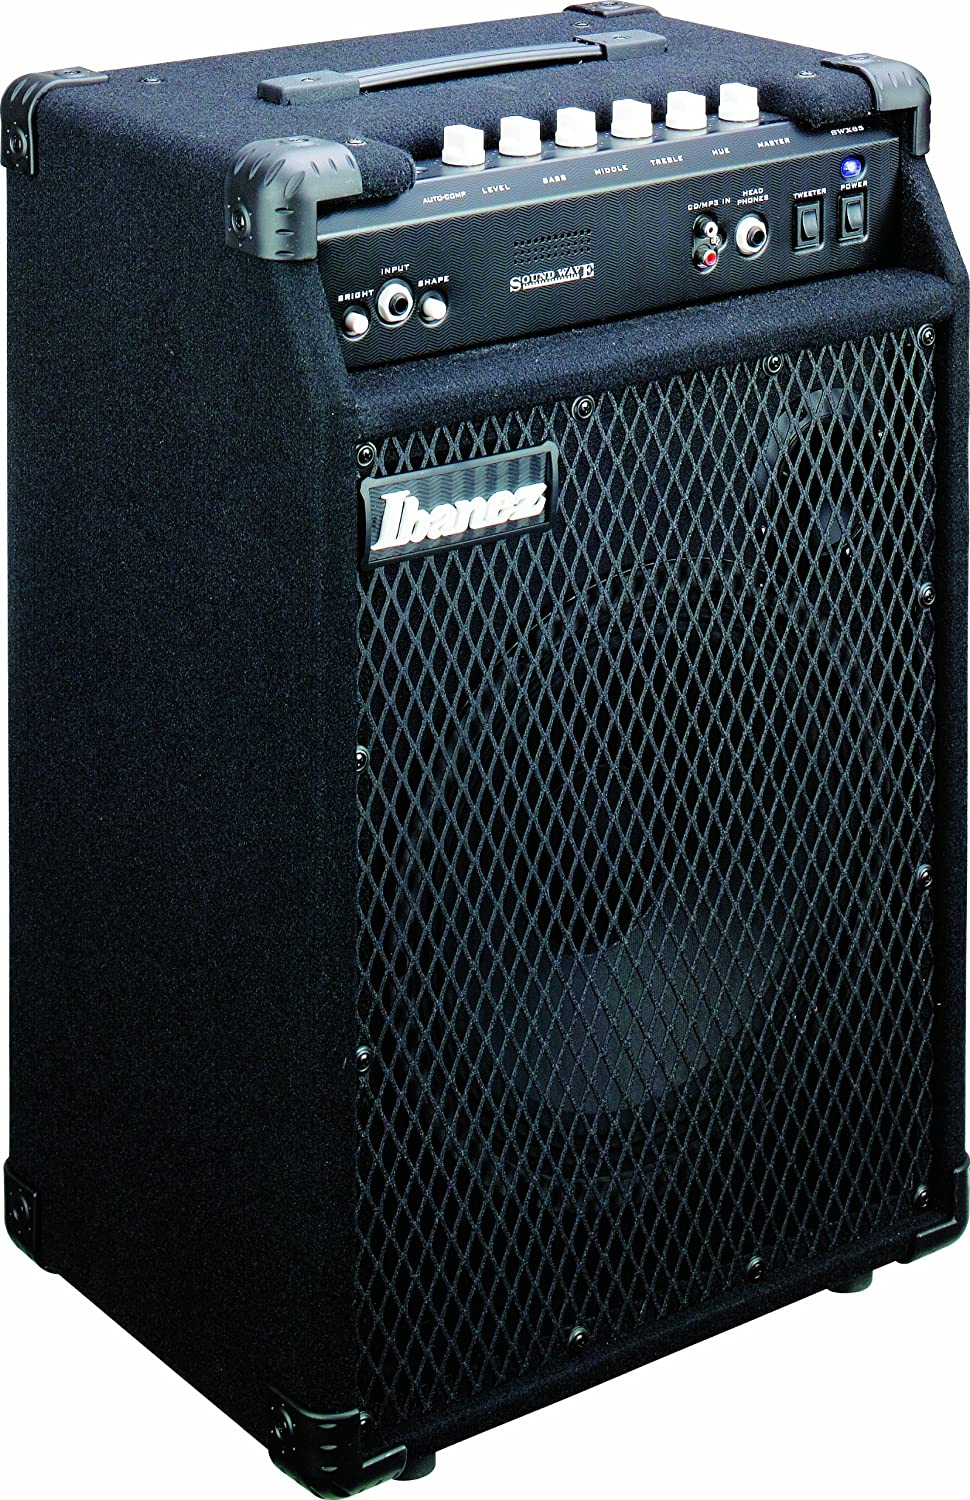 Ibanez swx65 Sound Wave Bass Amplificador combo 65 W: Amazon ...